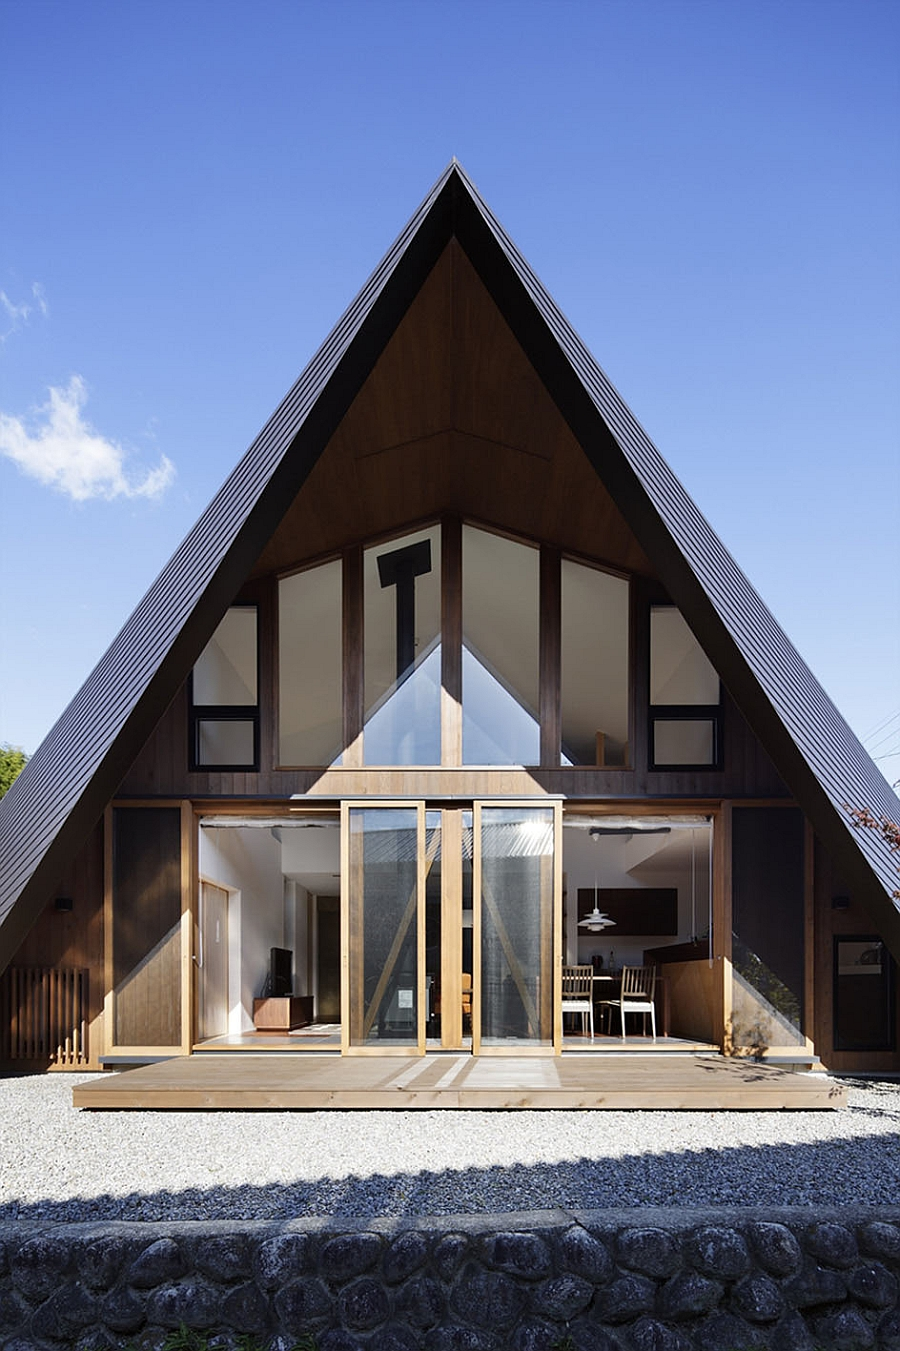 Unique exterior of the cool Origami house in Japan